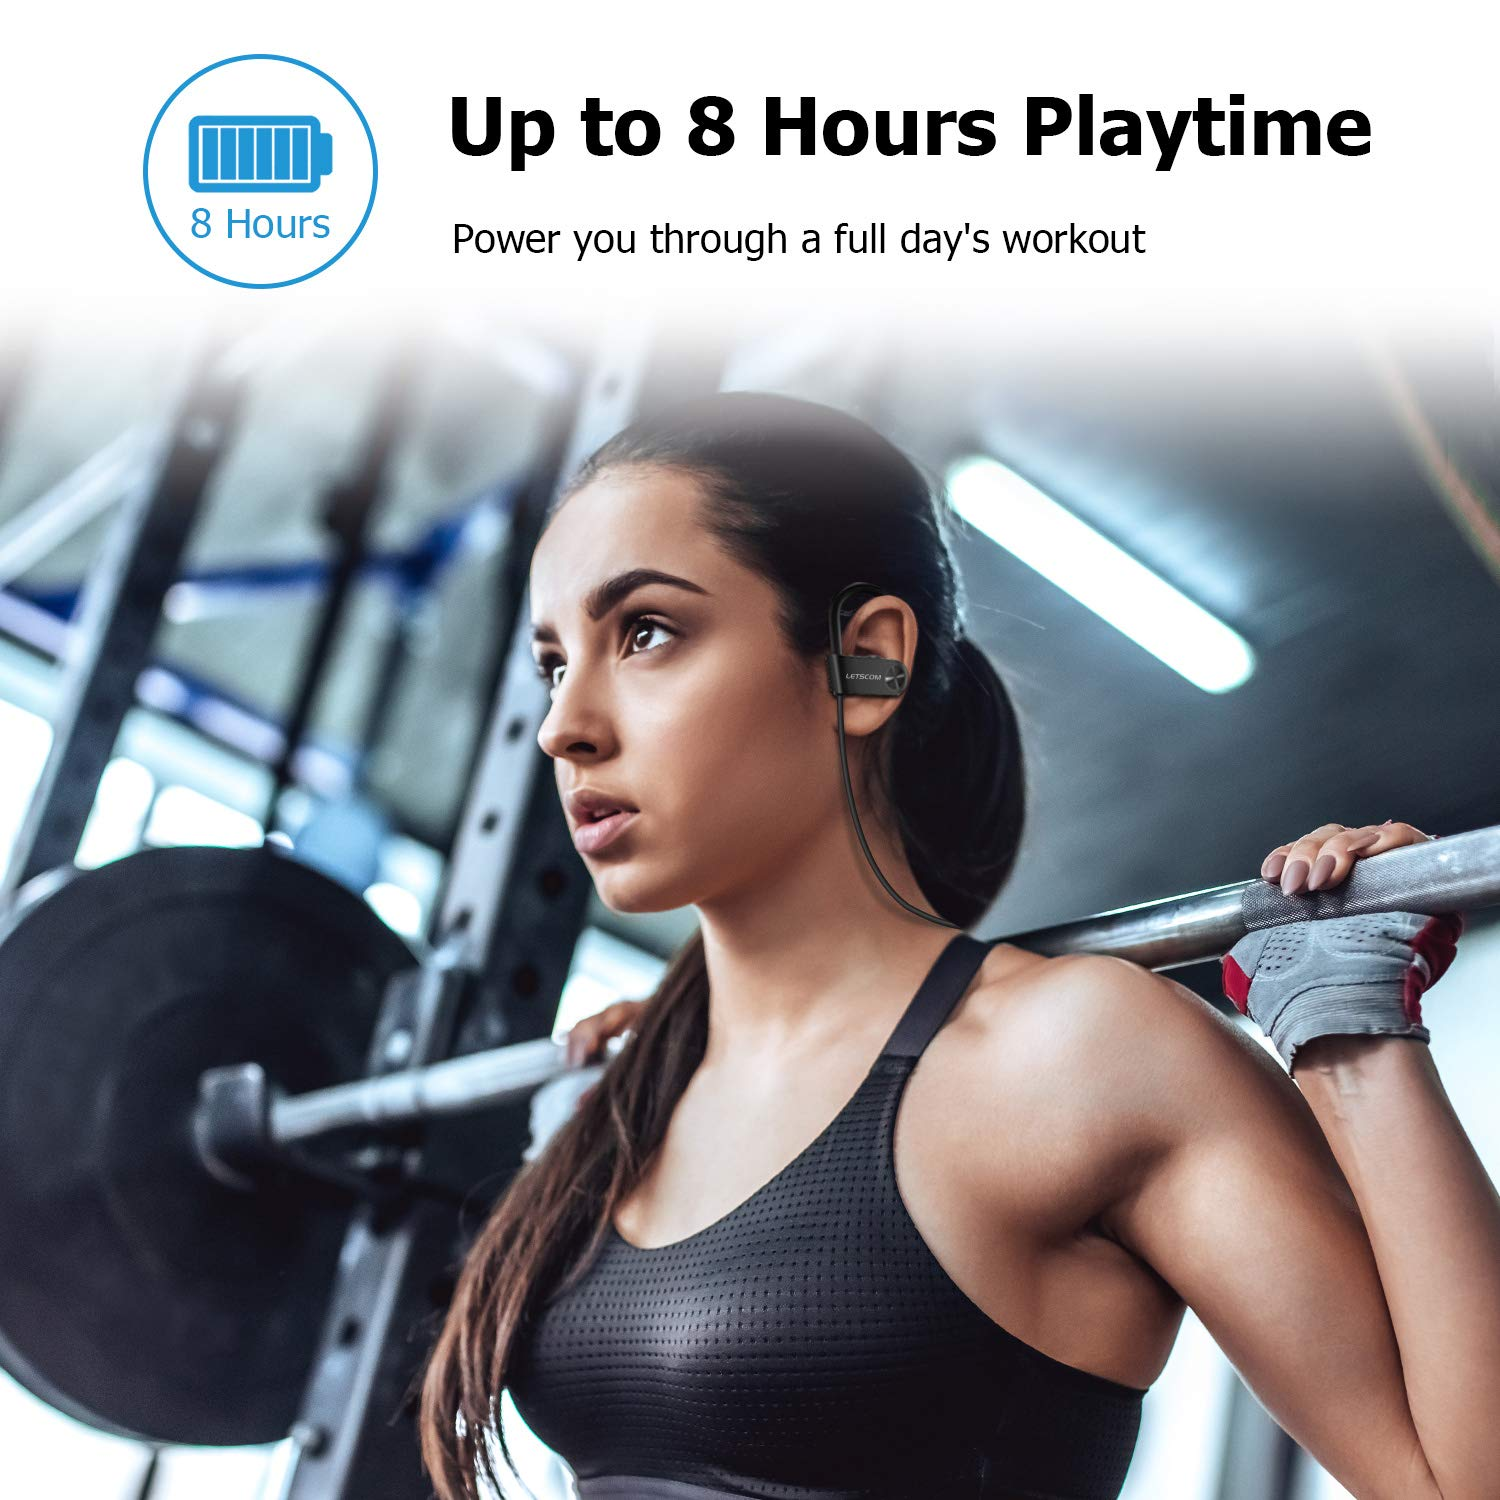 Bluetooth Headphones, LETSCOM Wireless Earbuds IPX7 Waterproof Noise Cancelling Headsets, Richer Bass & HiFi Stereo Sports Earphones 8 Hours Playtime Running Headphones with Travel Case by LETSCOM (Image #6)